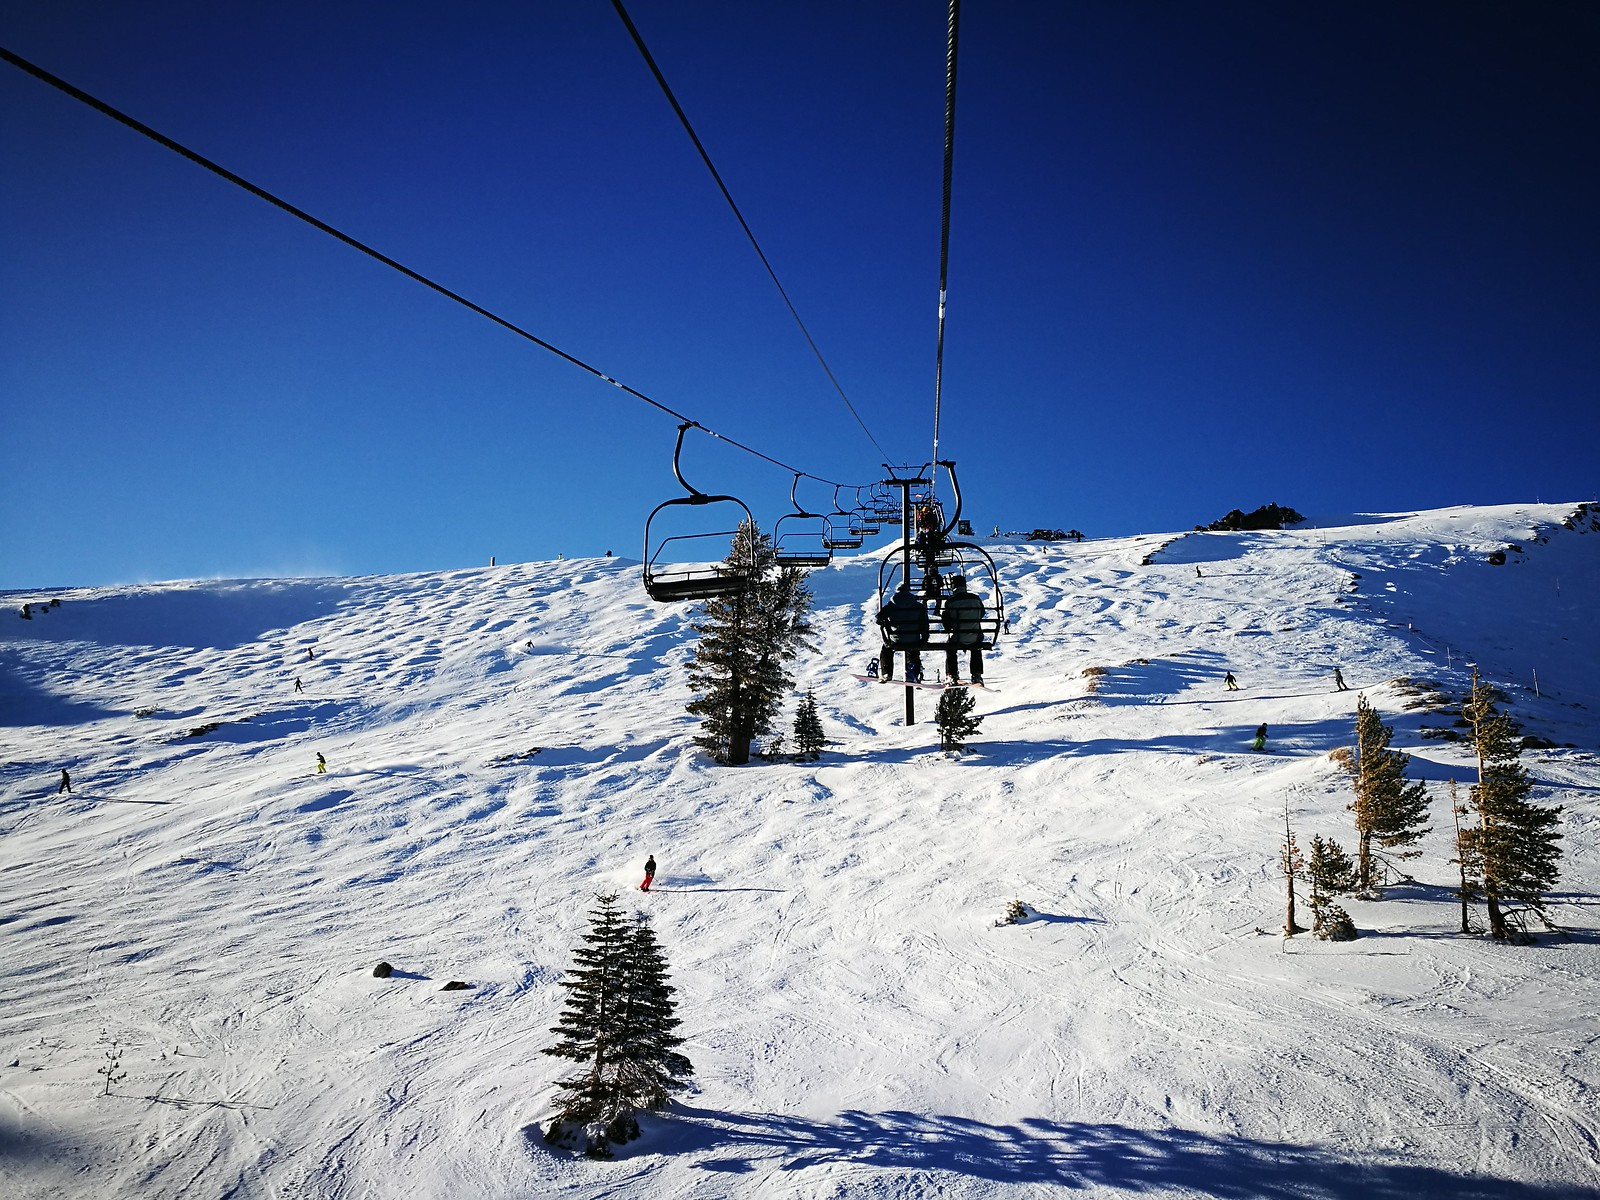 Emigrant chairlift